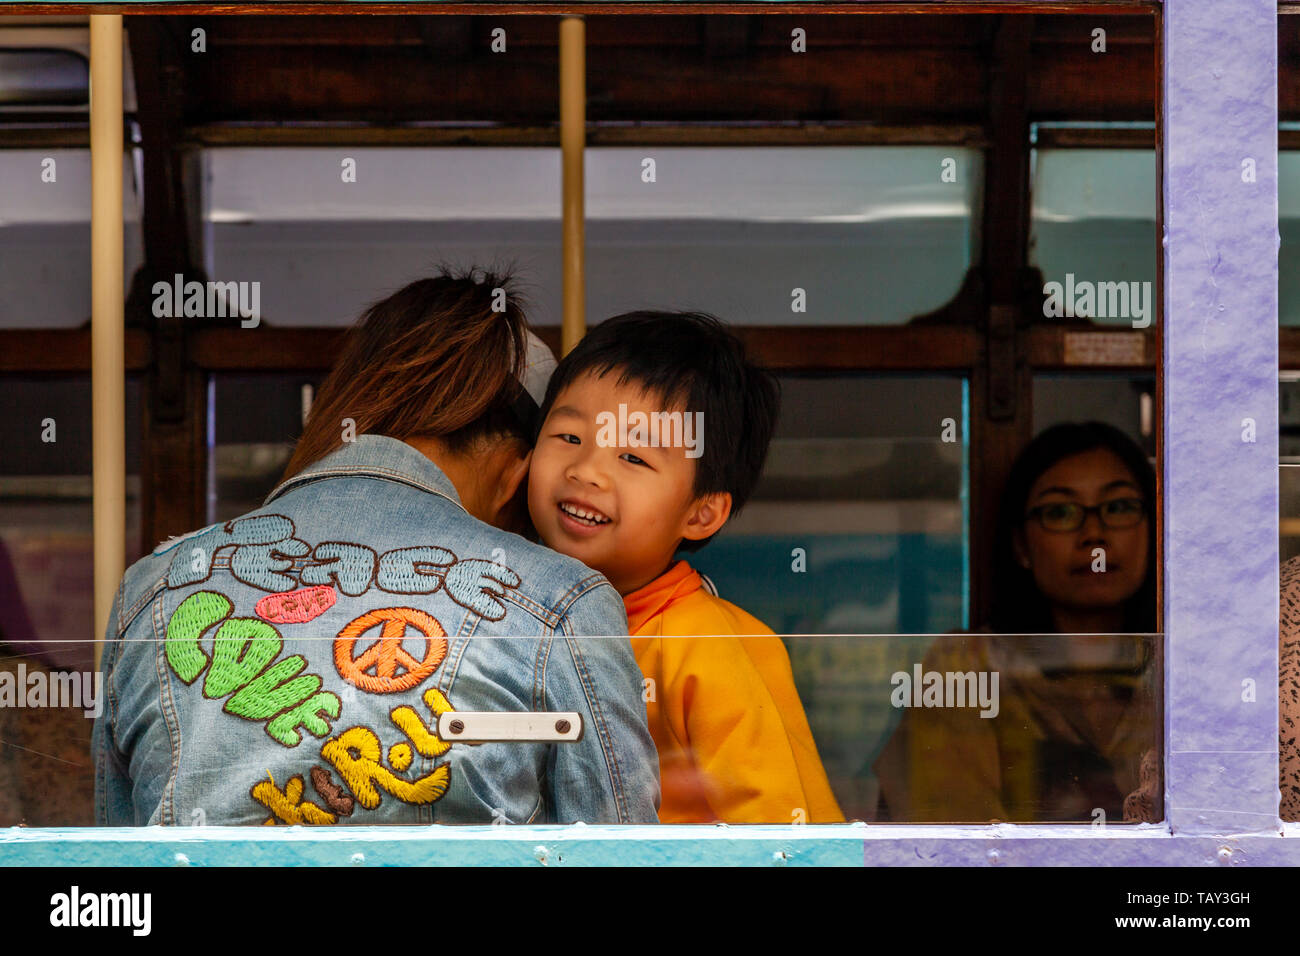 A Young Boy Looks Out The Window Of A Traditional Hong Kong Electric Tram, Hong Kong, China - Stock Image